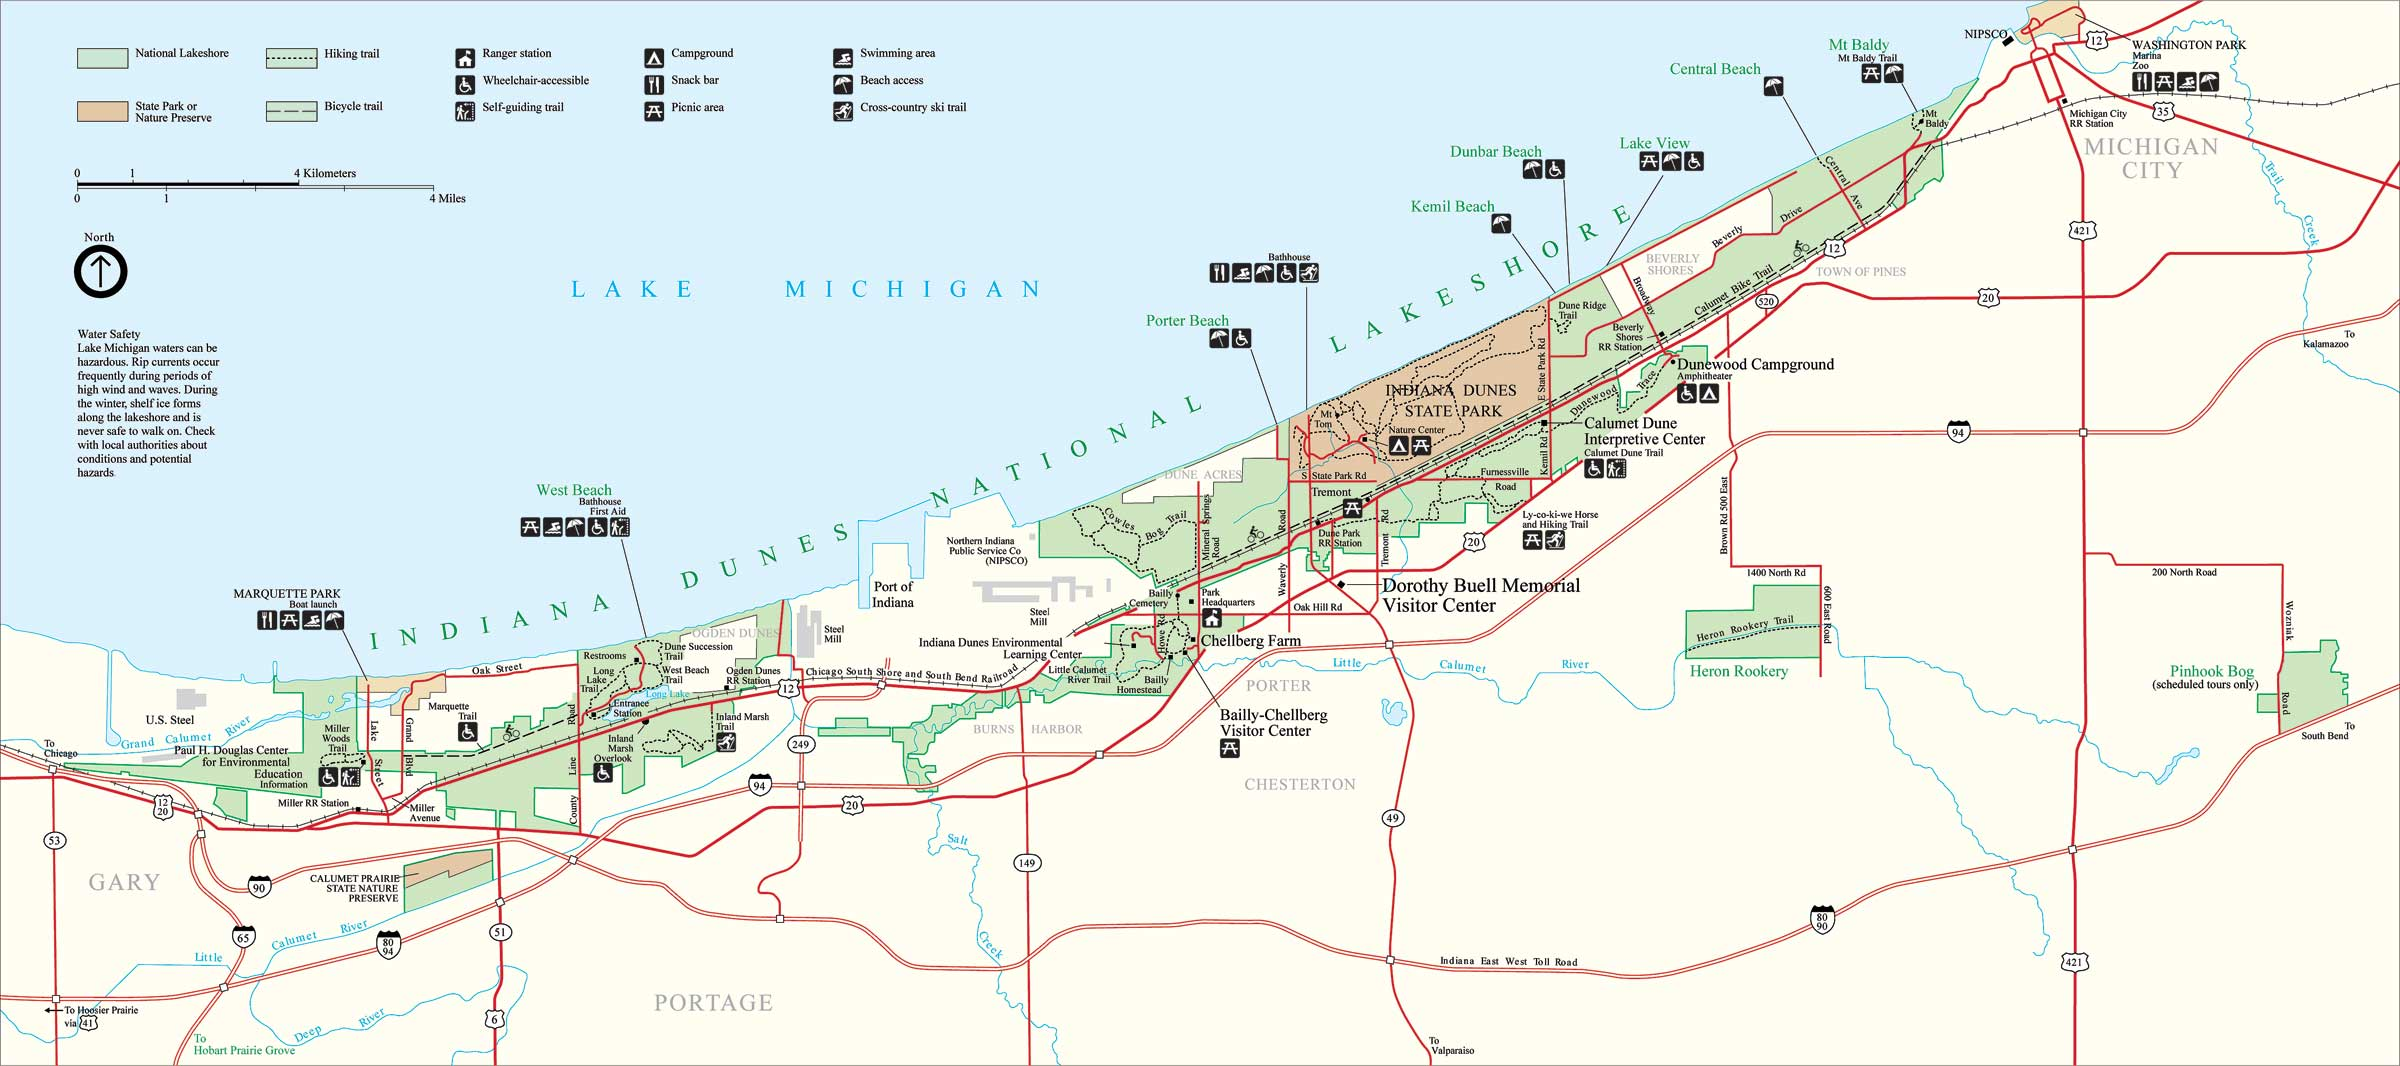 Indiana Dunes National Park Map Michigan City Indiana USA Mappery - Indiana on map of usa